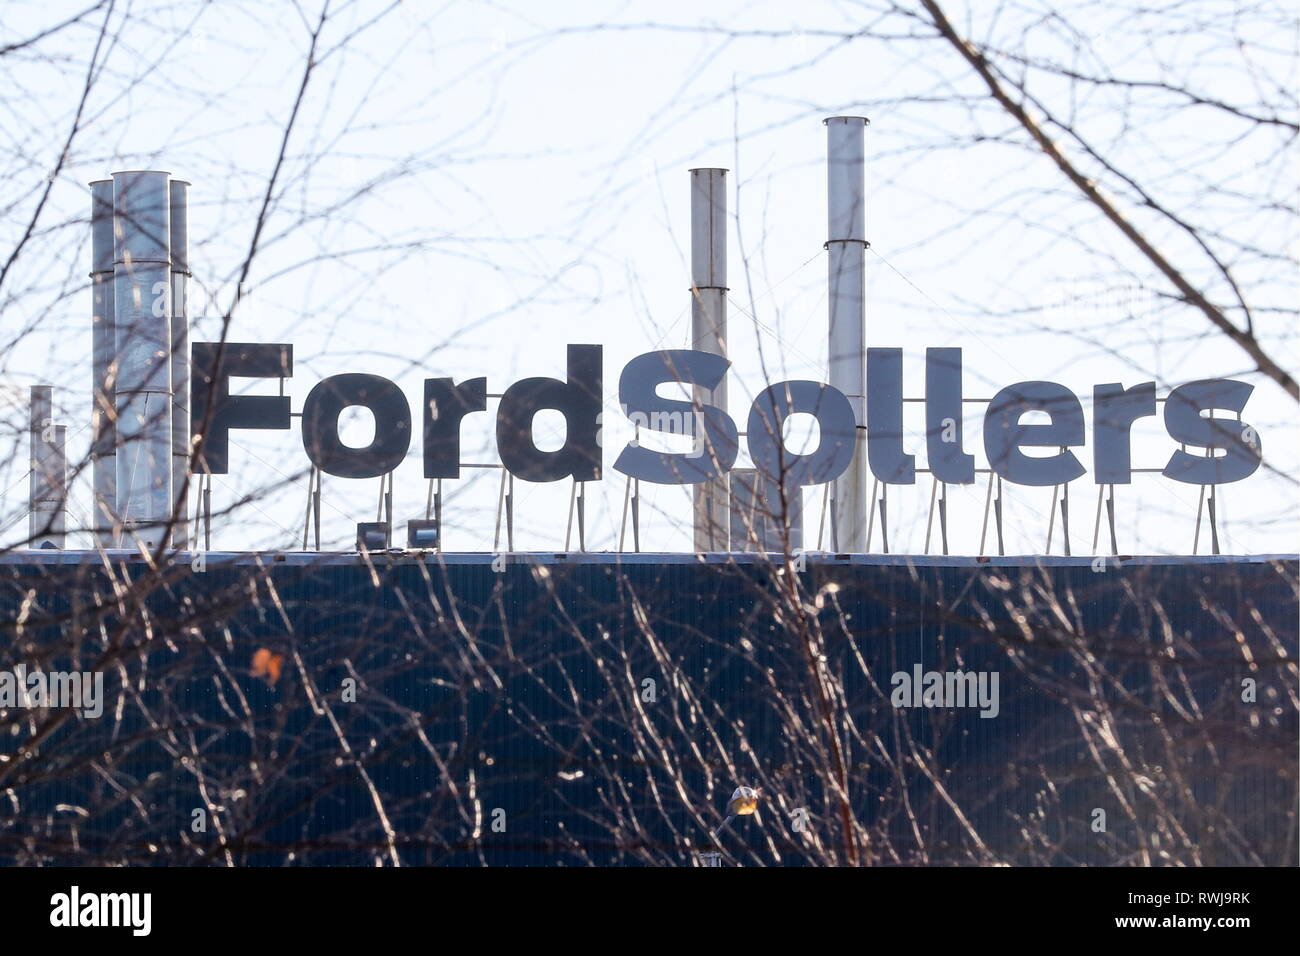 Russia 06th Mar 2019 Leningrad Region Russia March 6 2019 A View Of The Ford Sollers Plant In Vsevolozhsk The Enterprise Established By The Ford Motor Company And Sollers In 2011